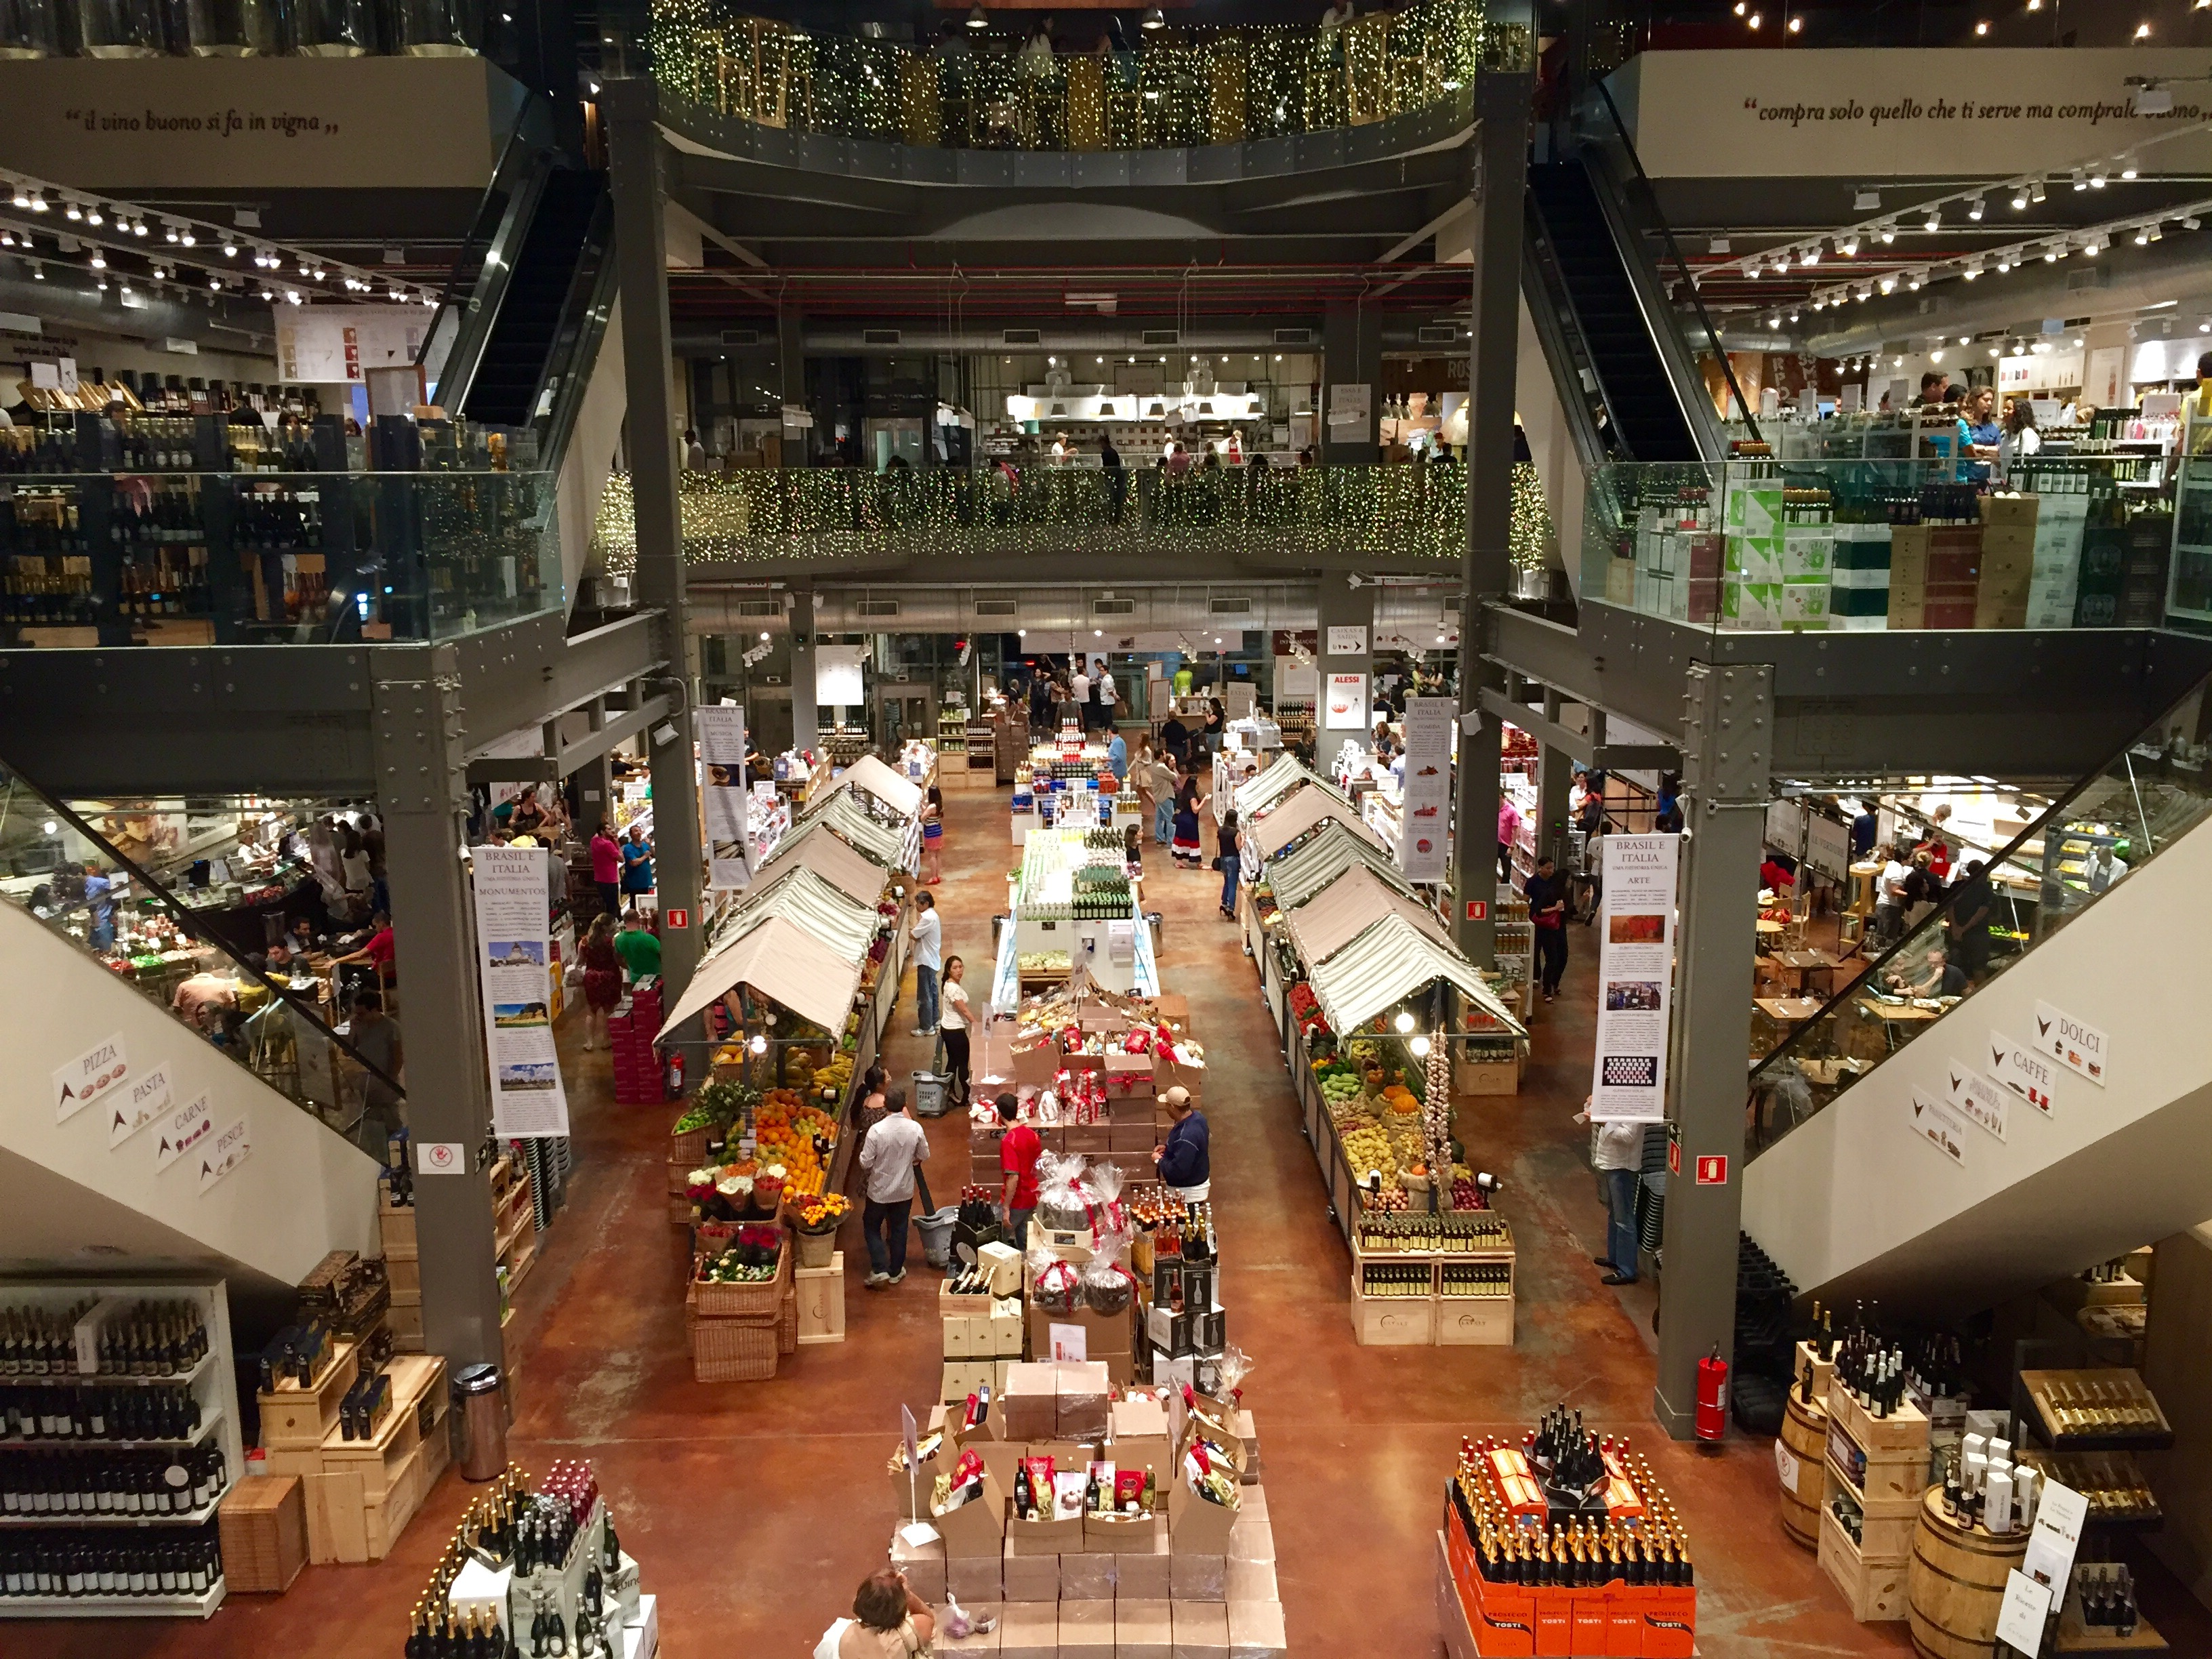 File Eatalybrasilsp Jpg Wikipedia